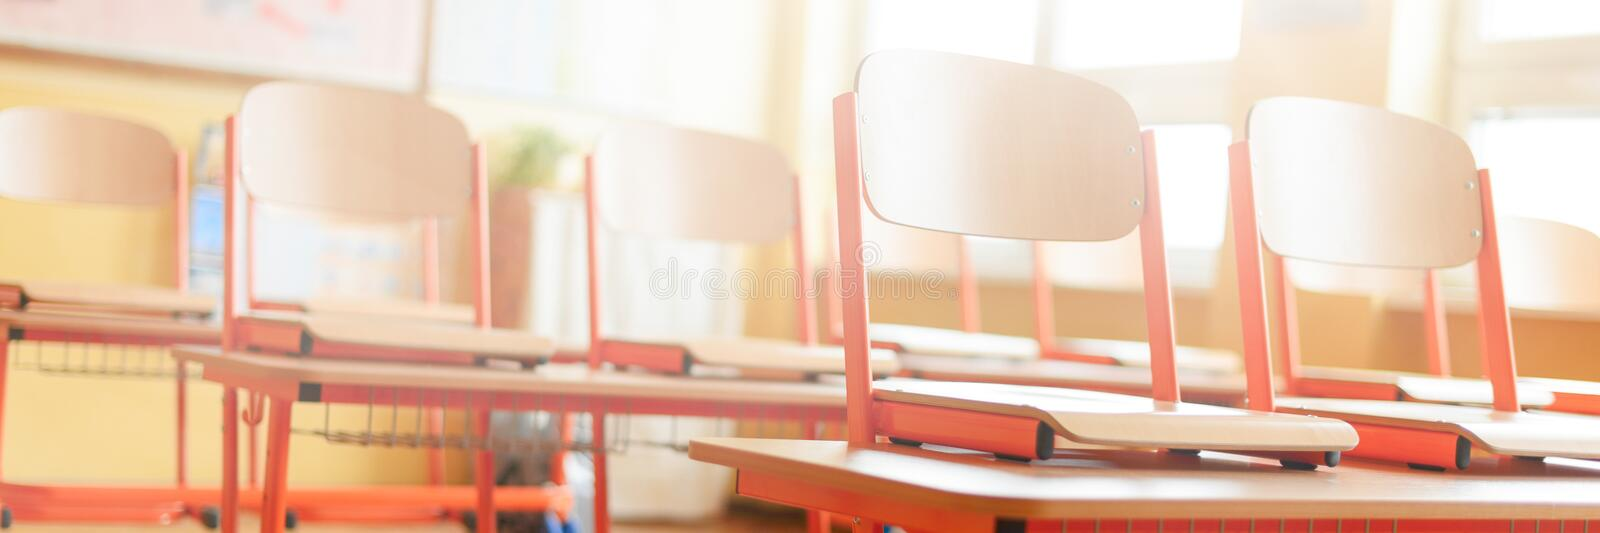 Empty classroom with school desks, chairs and blackboard. Education concept. Empty classroom with school desks, chairs and blackboard. Education concept stock image